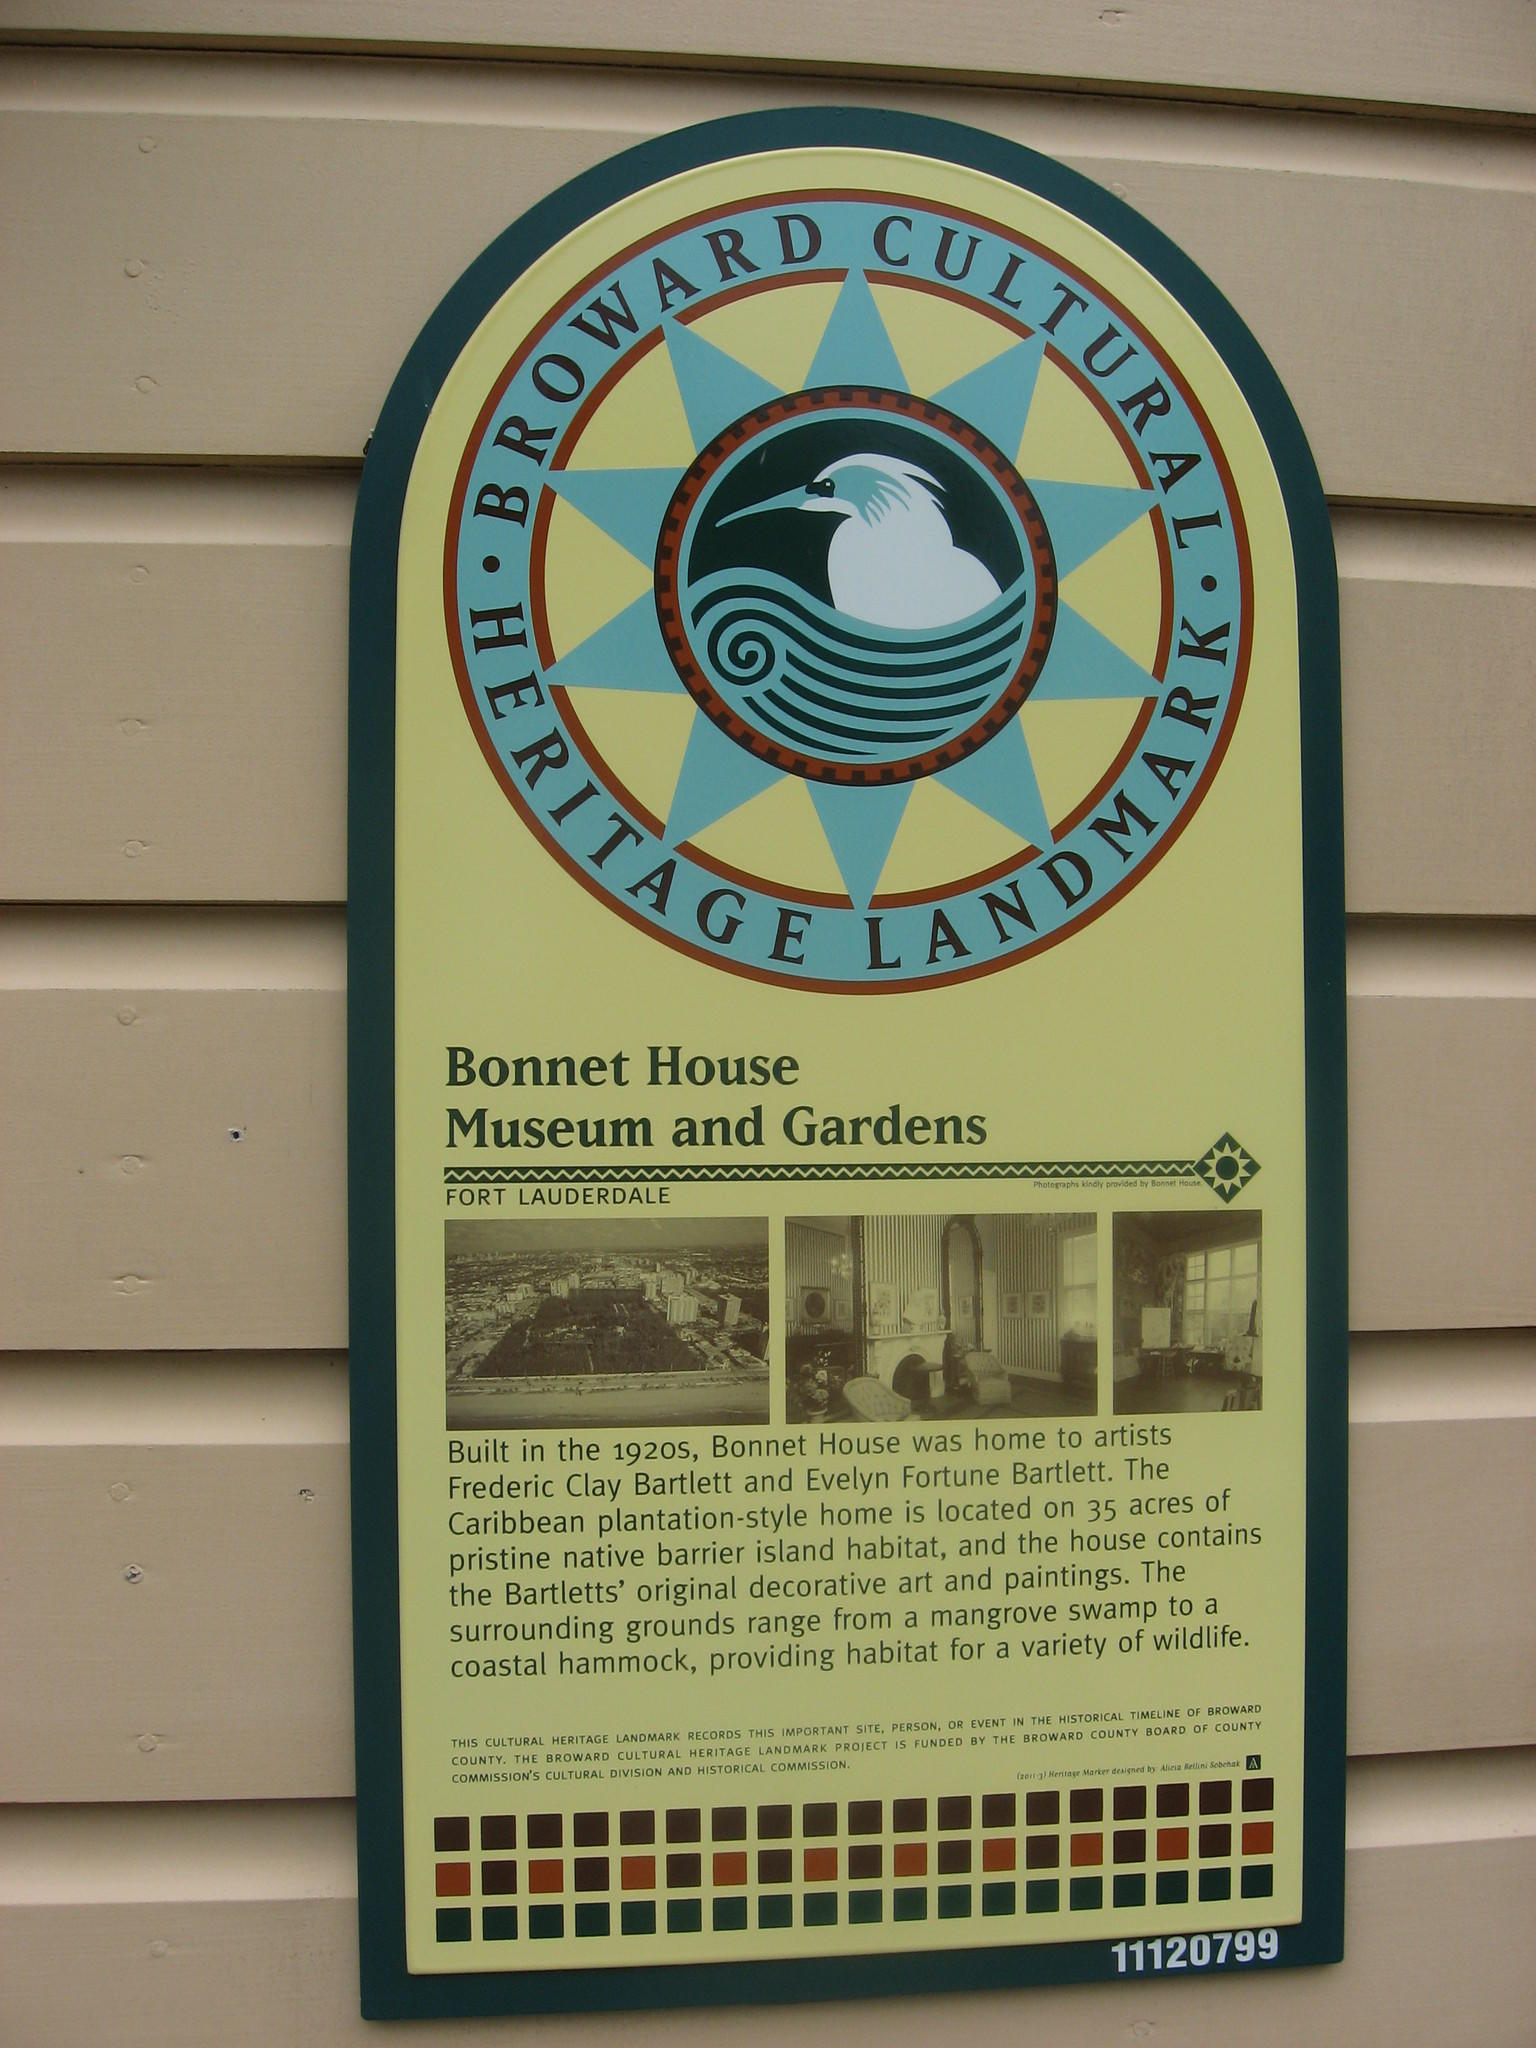 Historical landmark signage at Bonnet House Museum and Gardens in Fort Lauderdale.